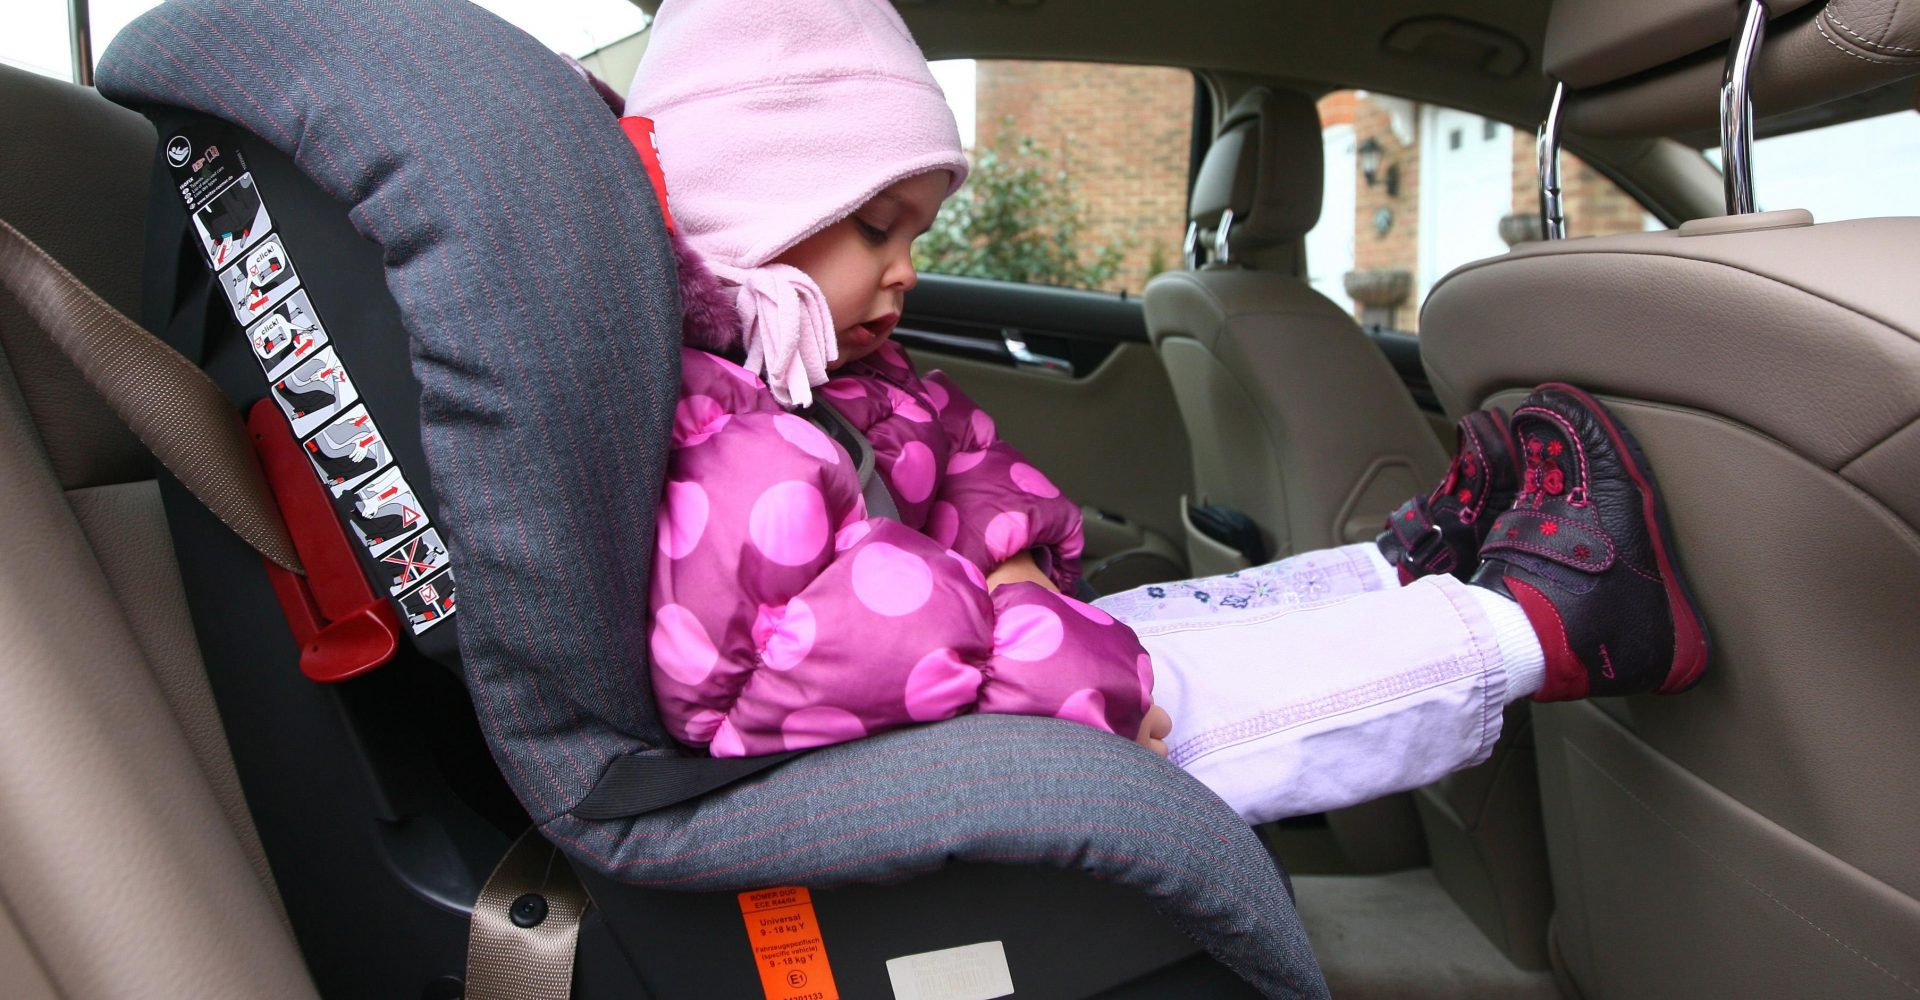 Fifth of parents and grandparents admit to not using car seats for children